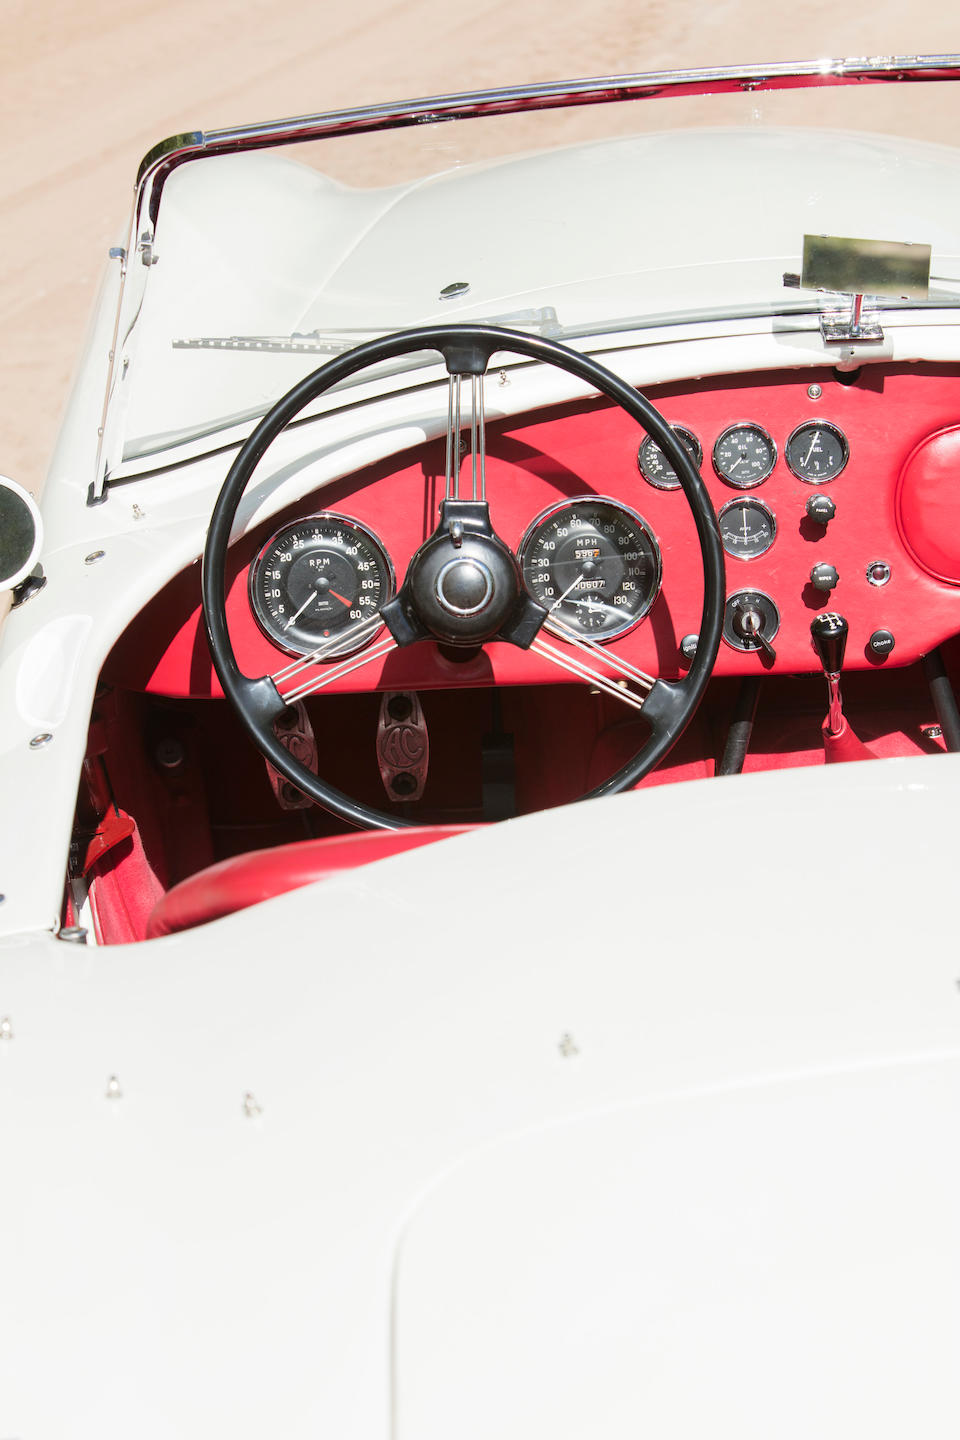 <B>1959 AC ACE-Bristol</B><br /> Chassis no. BEX 1003<br /> Engine no. 100D2 881